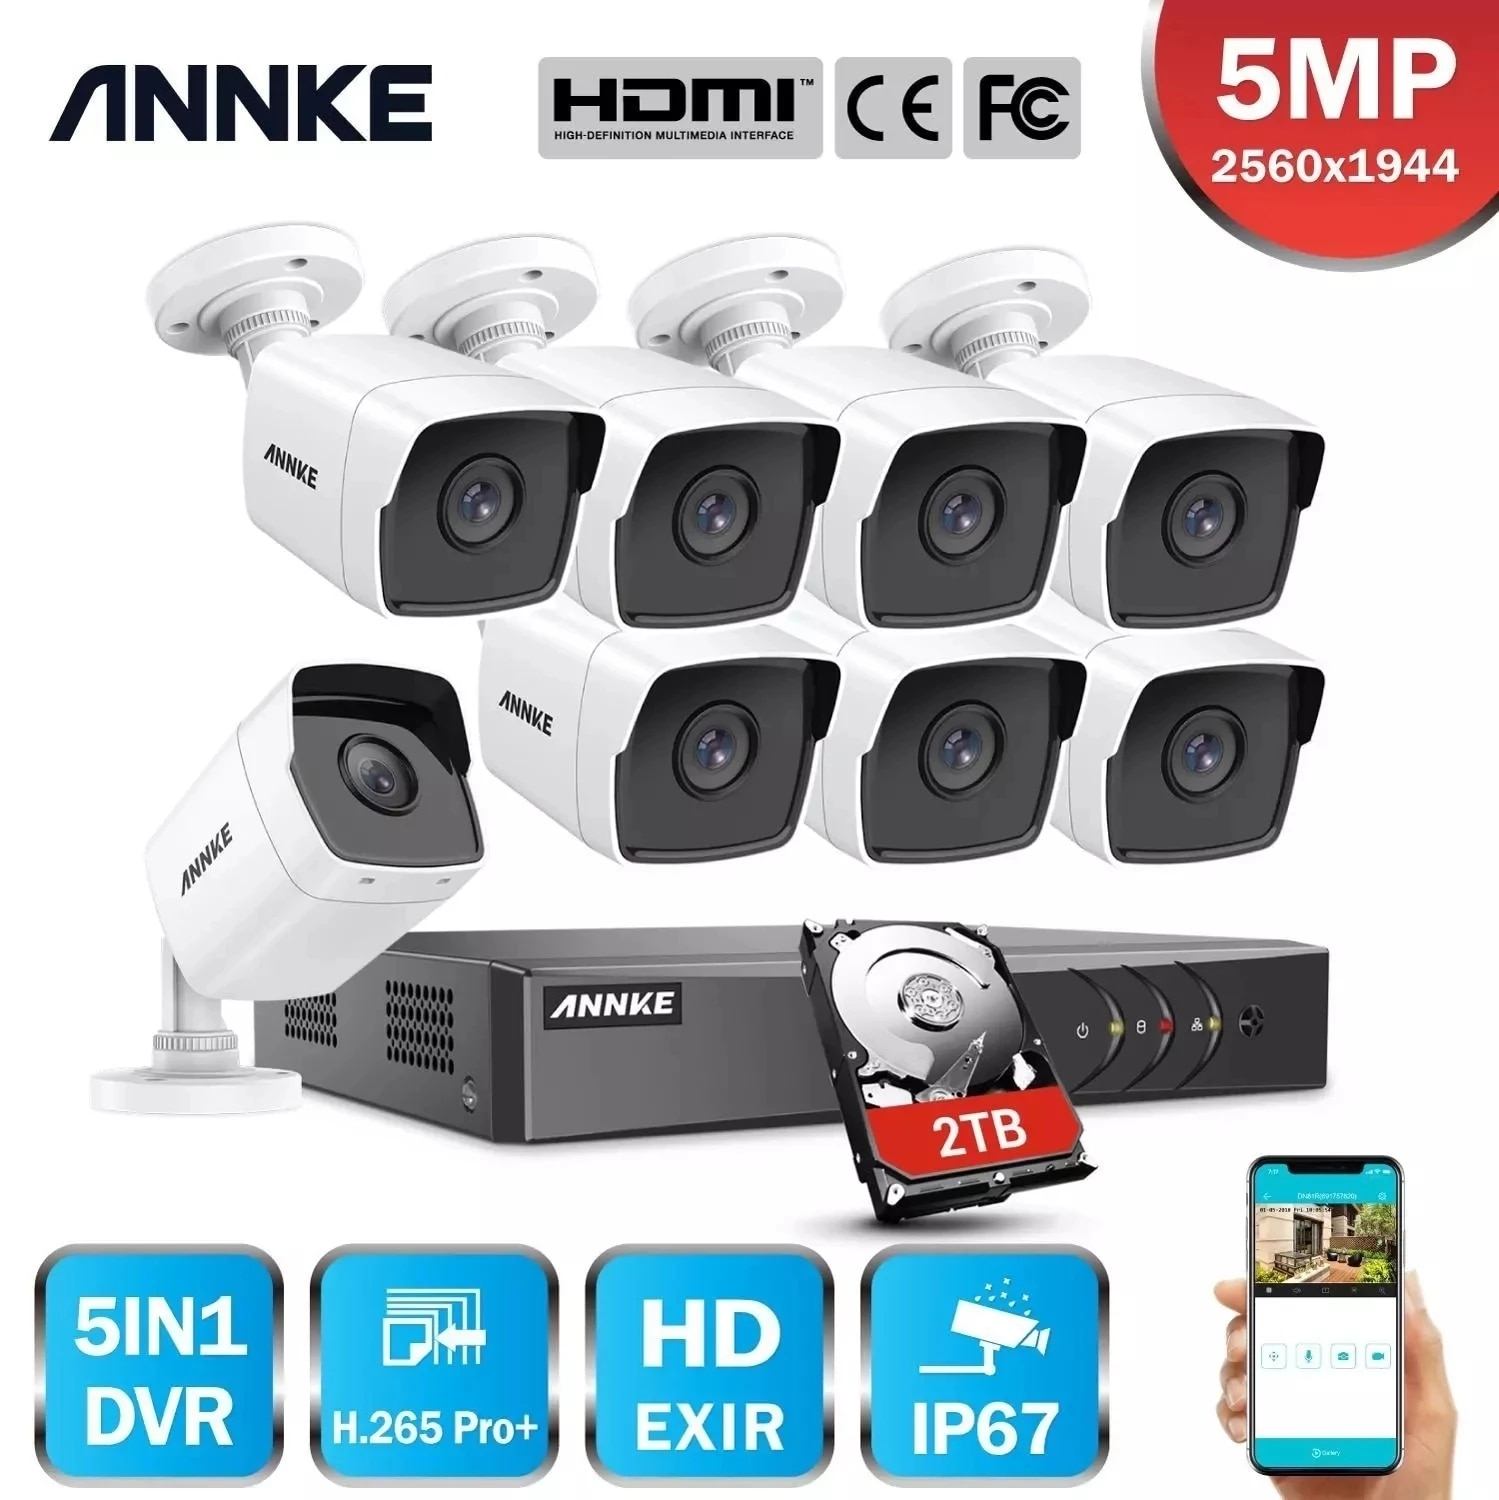 Review ANNK H.265+ 5MP Lite Ultra HD 8CH DVR CCTV Security System Outdoor 5MP EXIR Night Vision Camera Video Surveillance Kit